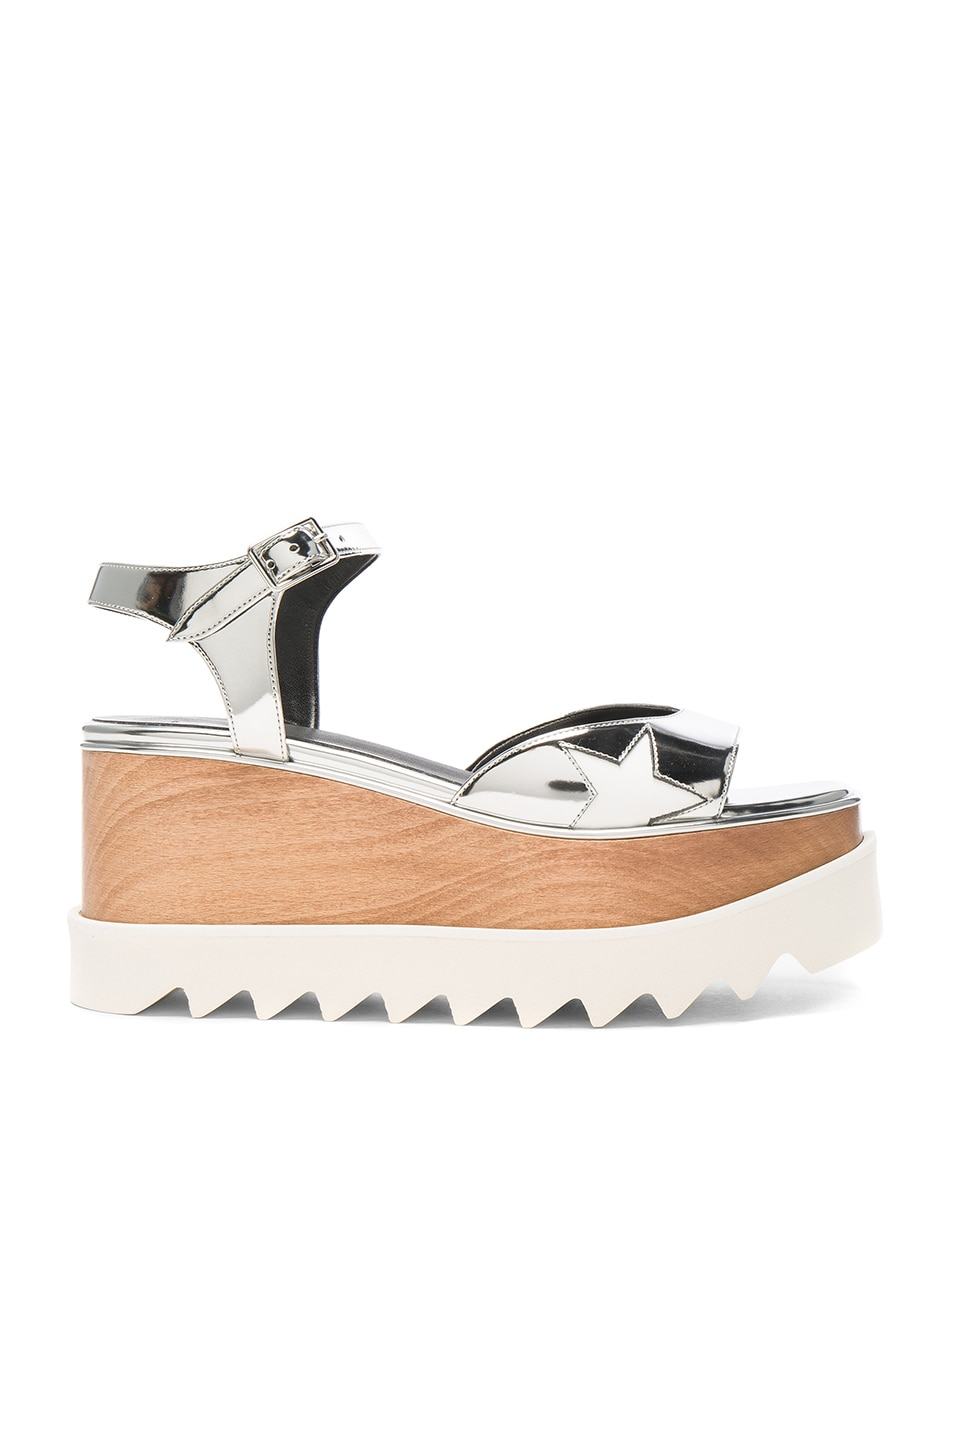 Image 1 of Stella McCartneyPlatform Sandals in Indium & White